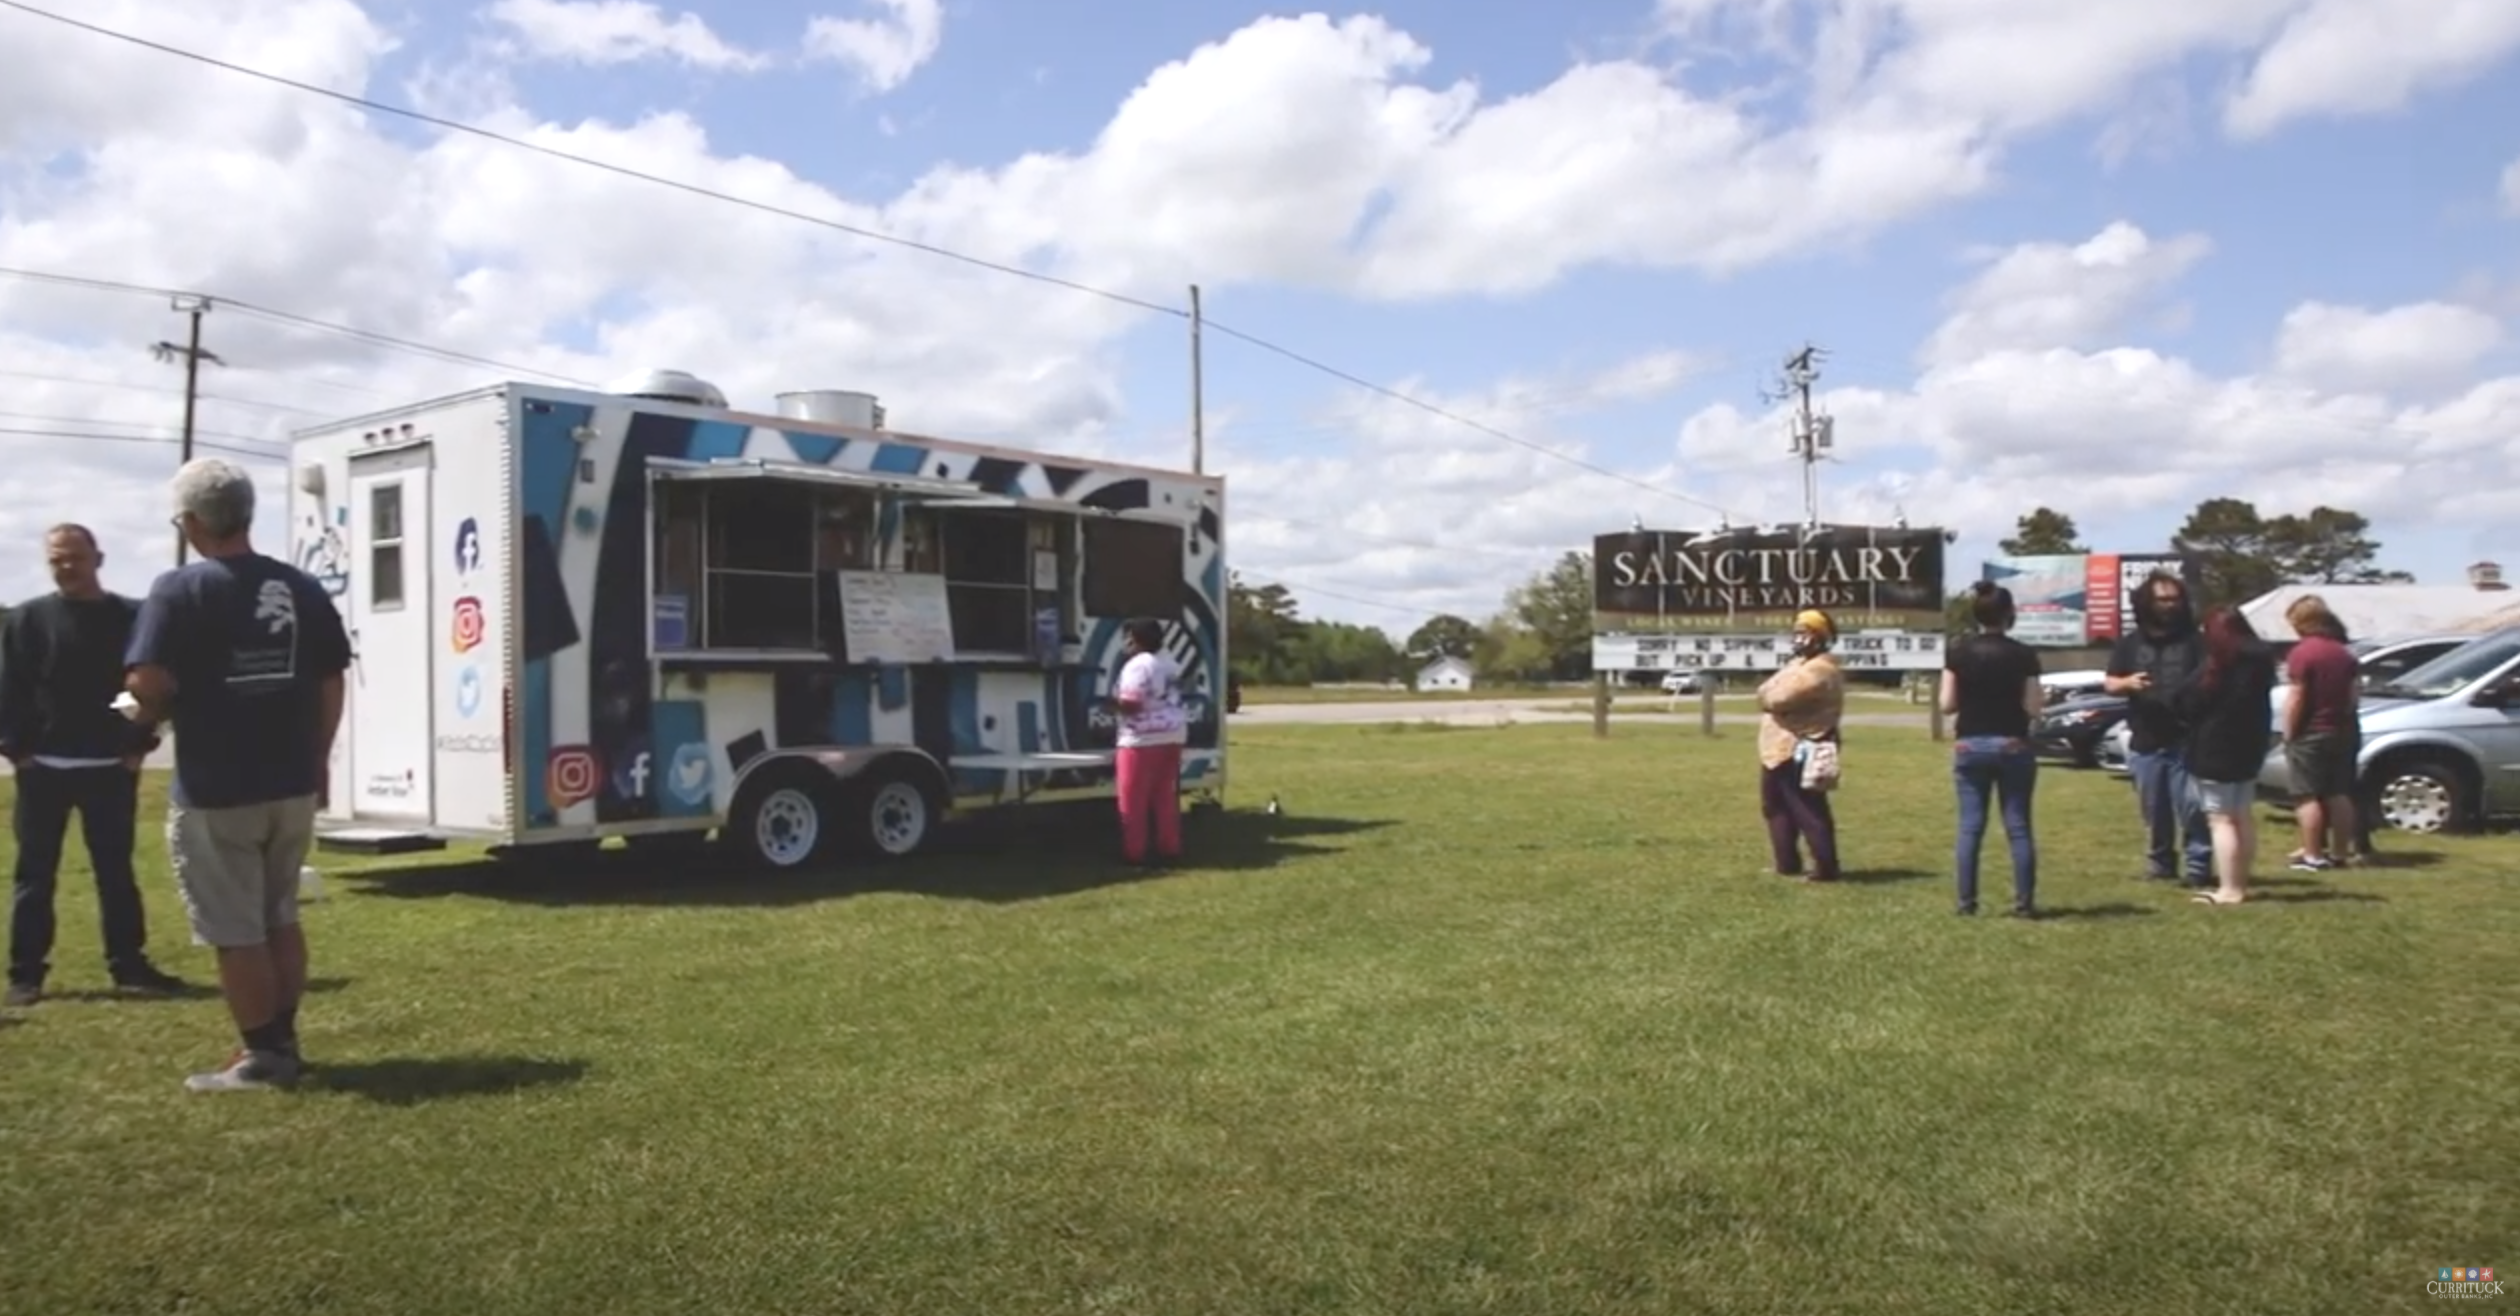 VIDEO: Currituck County Businesses are Resilient and Ready for Visitors